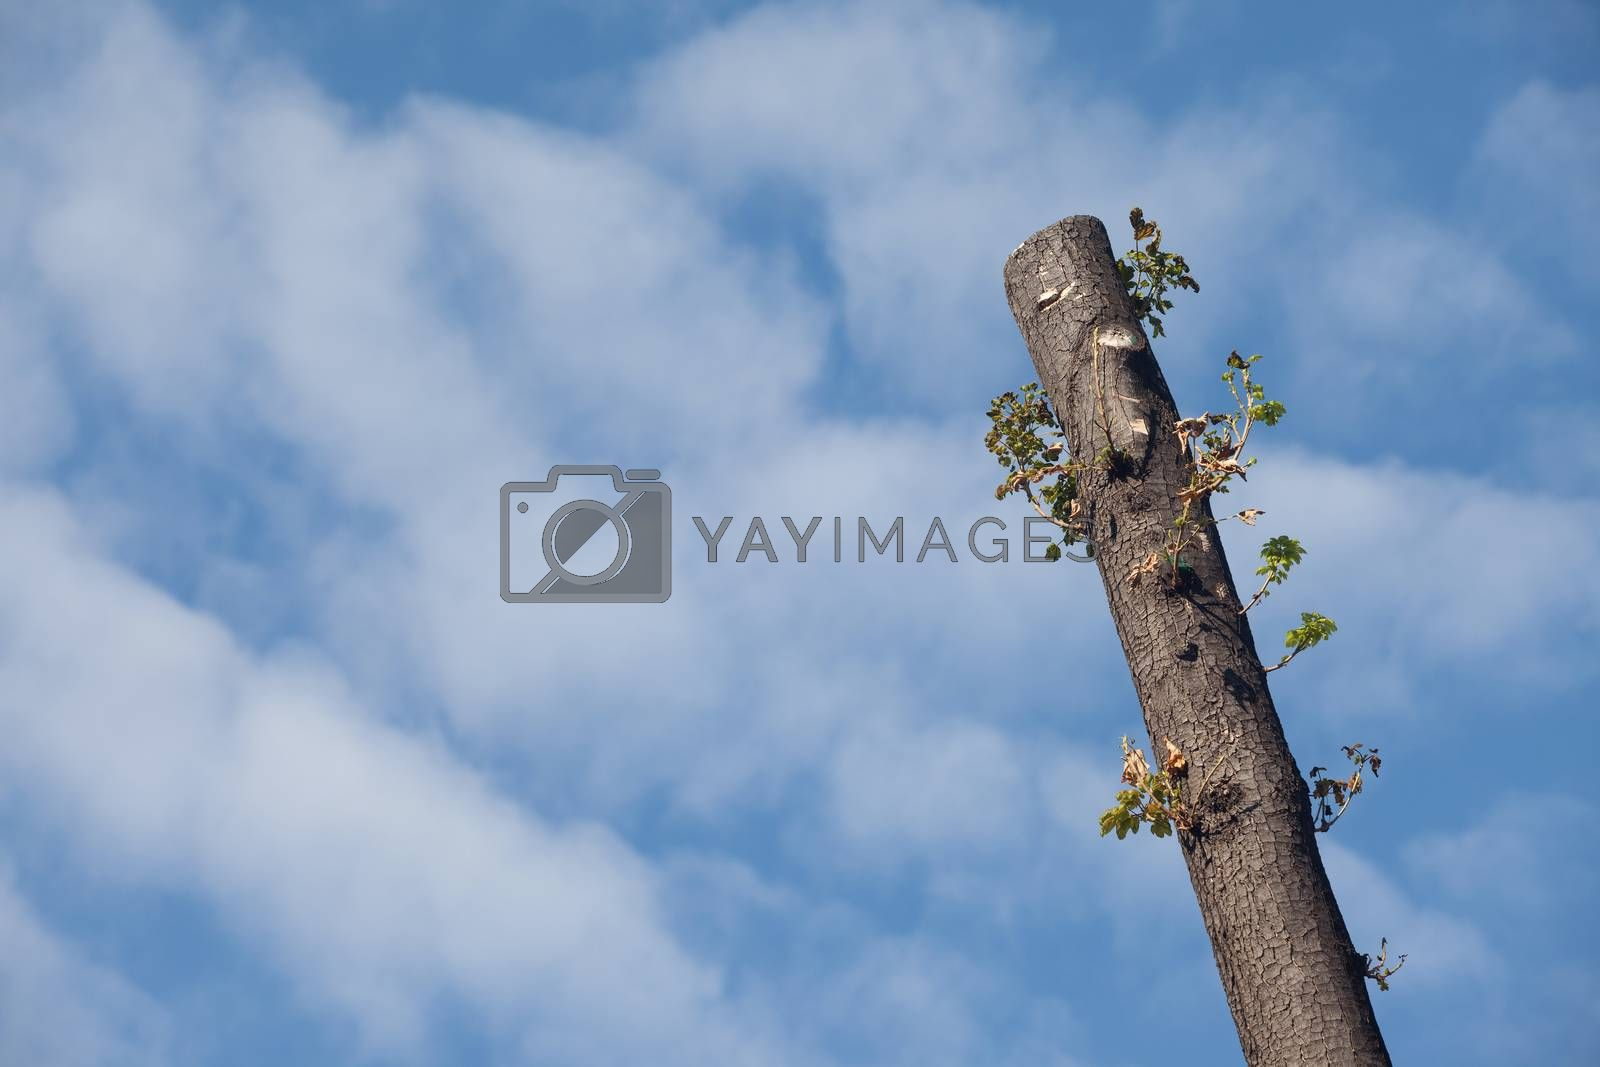 Cut of tree over blue sky with some light clouds.